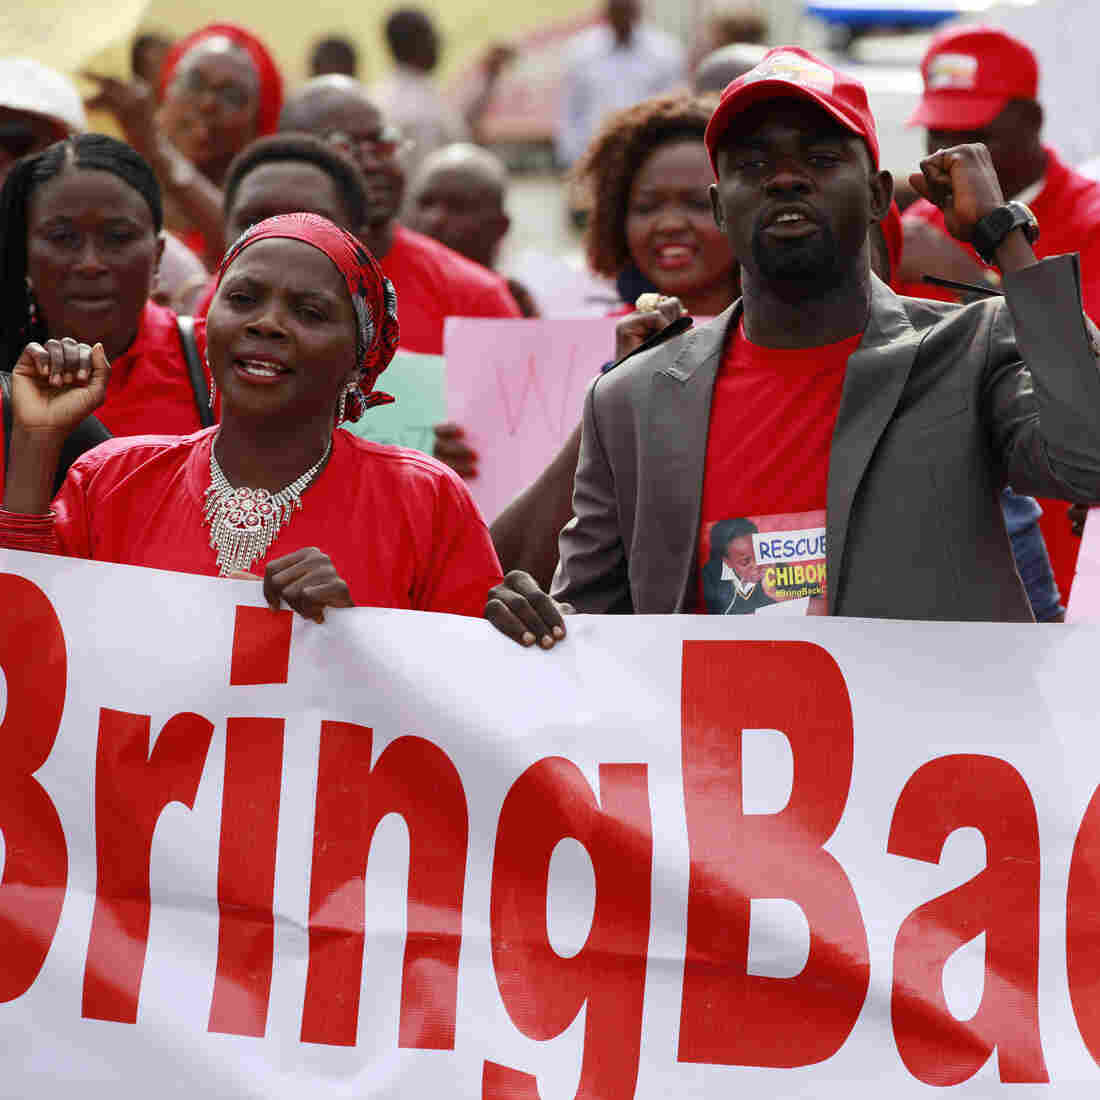 People attend a rally in Abuja, Nigeria, calling on the government to rescue kidnapped school girls.